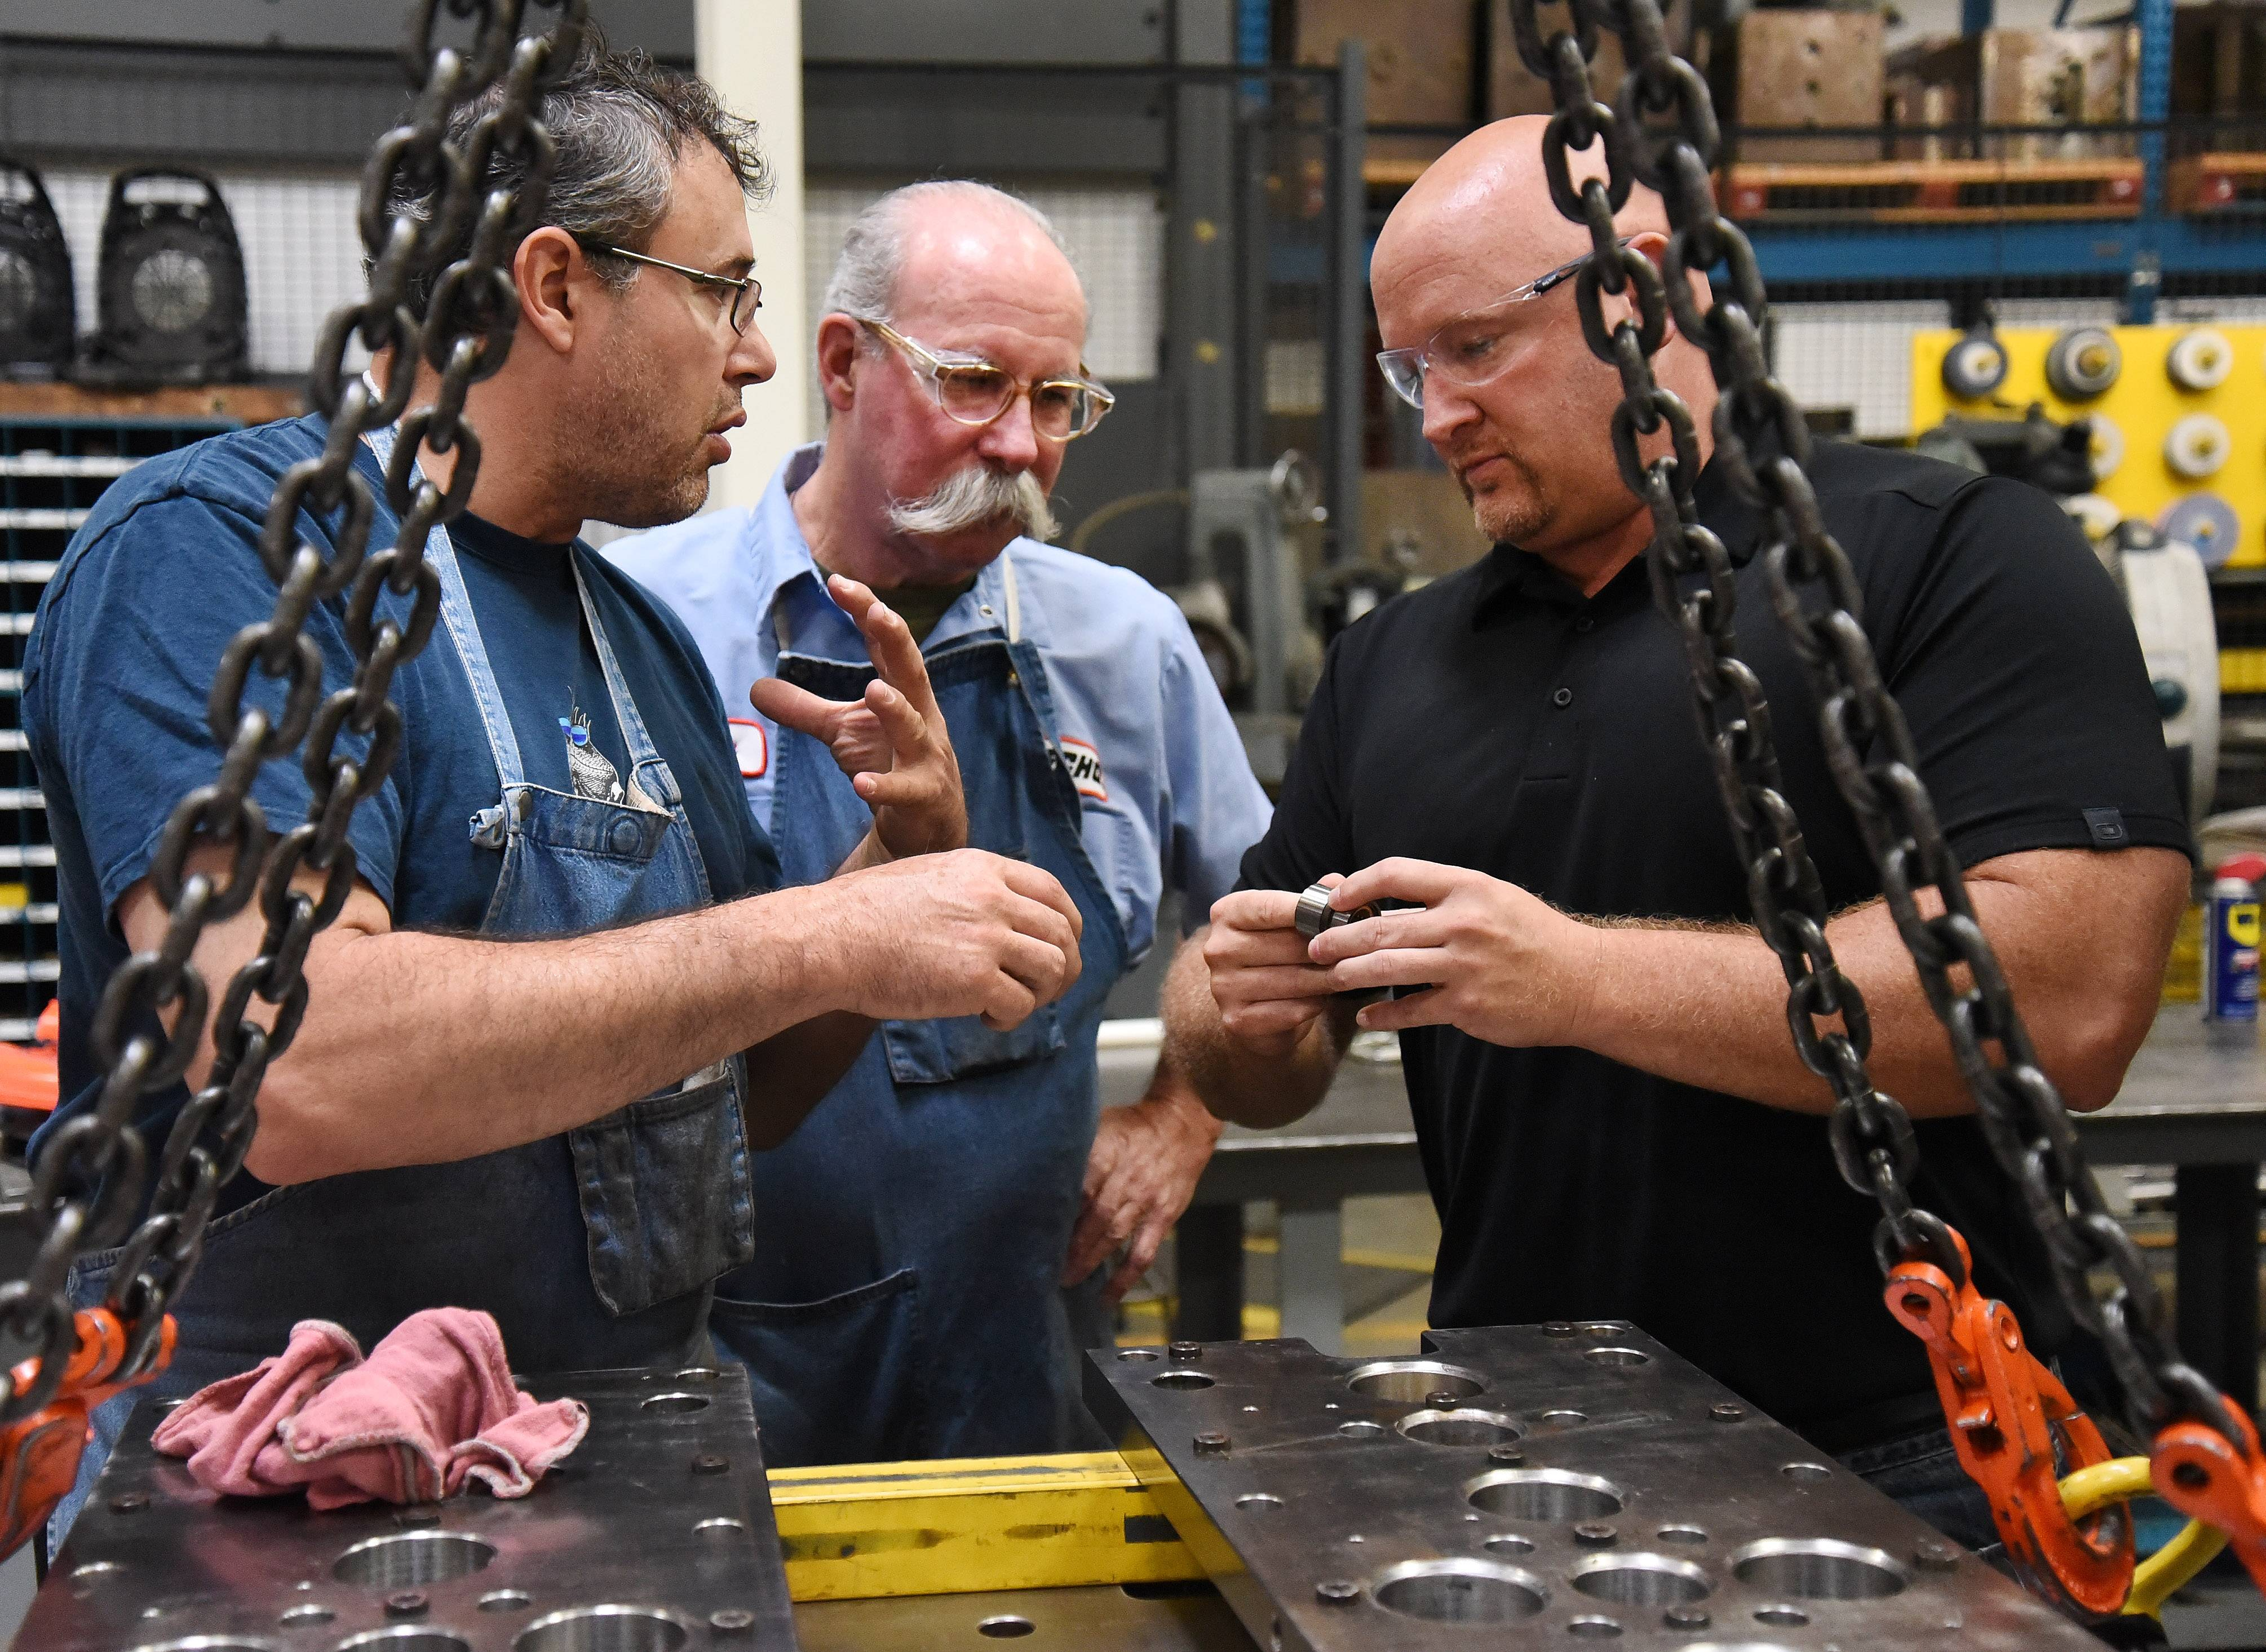 Mold makers Jeff Gorden, from left, and William Ross go over some preventive maintenance on injection mold tooling with Ryan Ladley, senior director of operations at Echo Inc. in Lake Zurich.